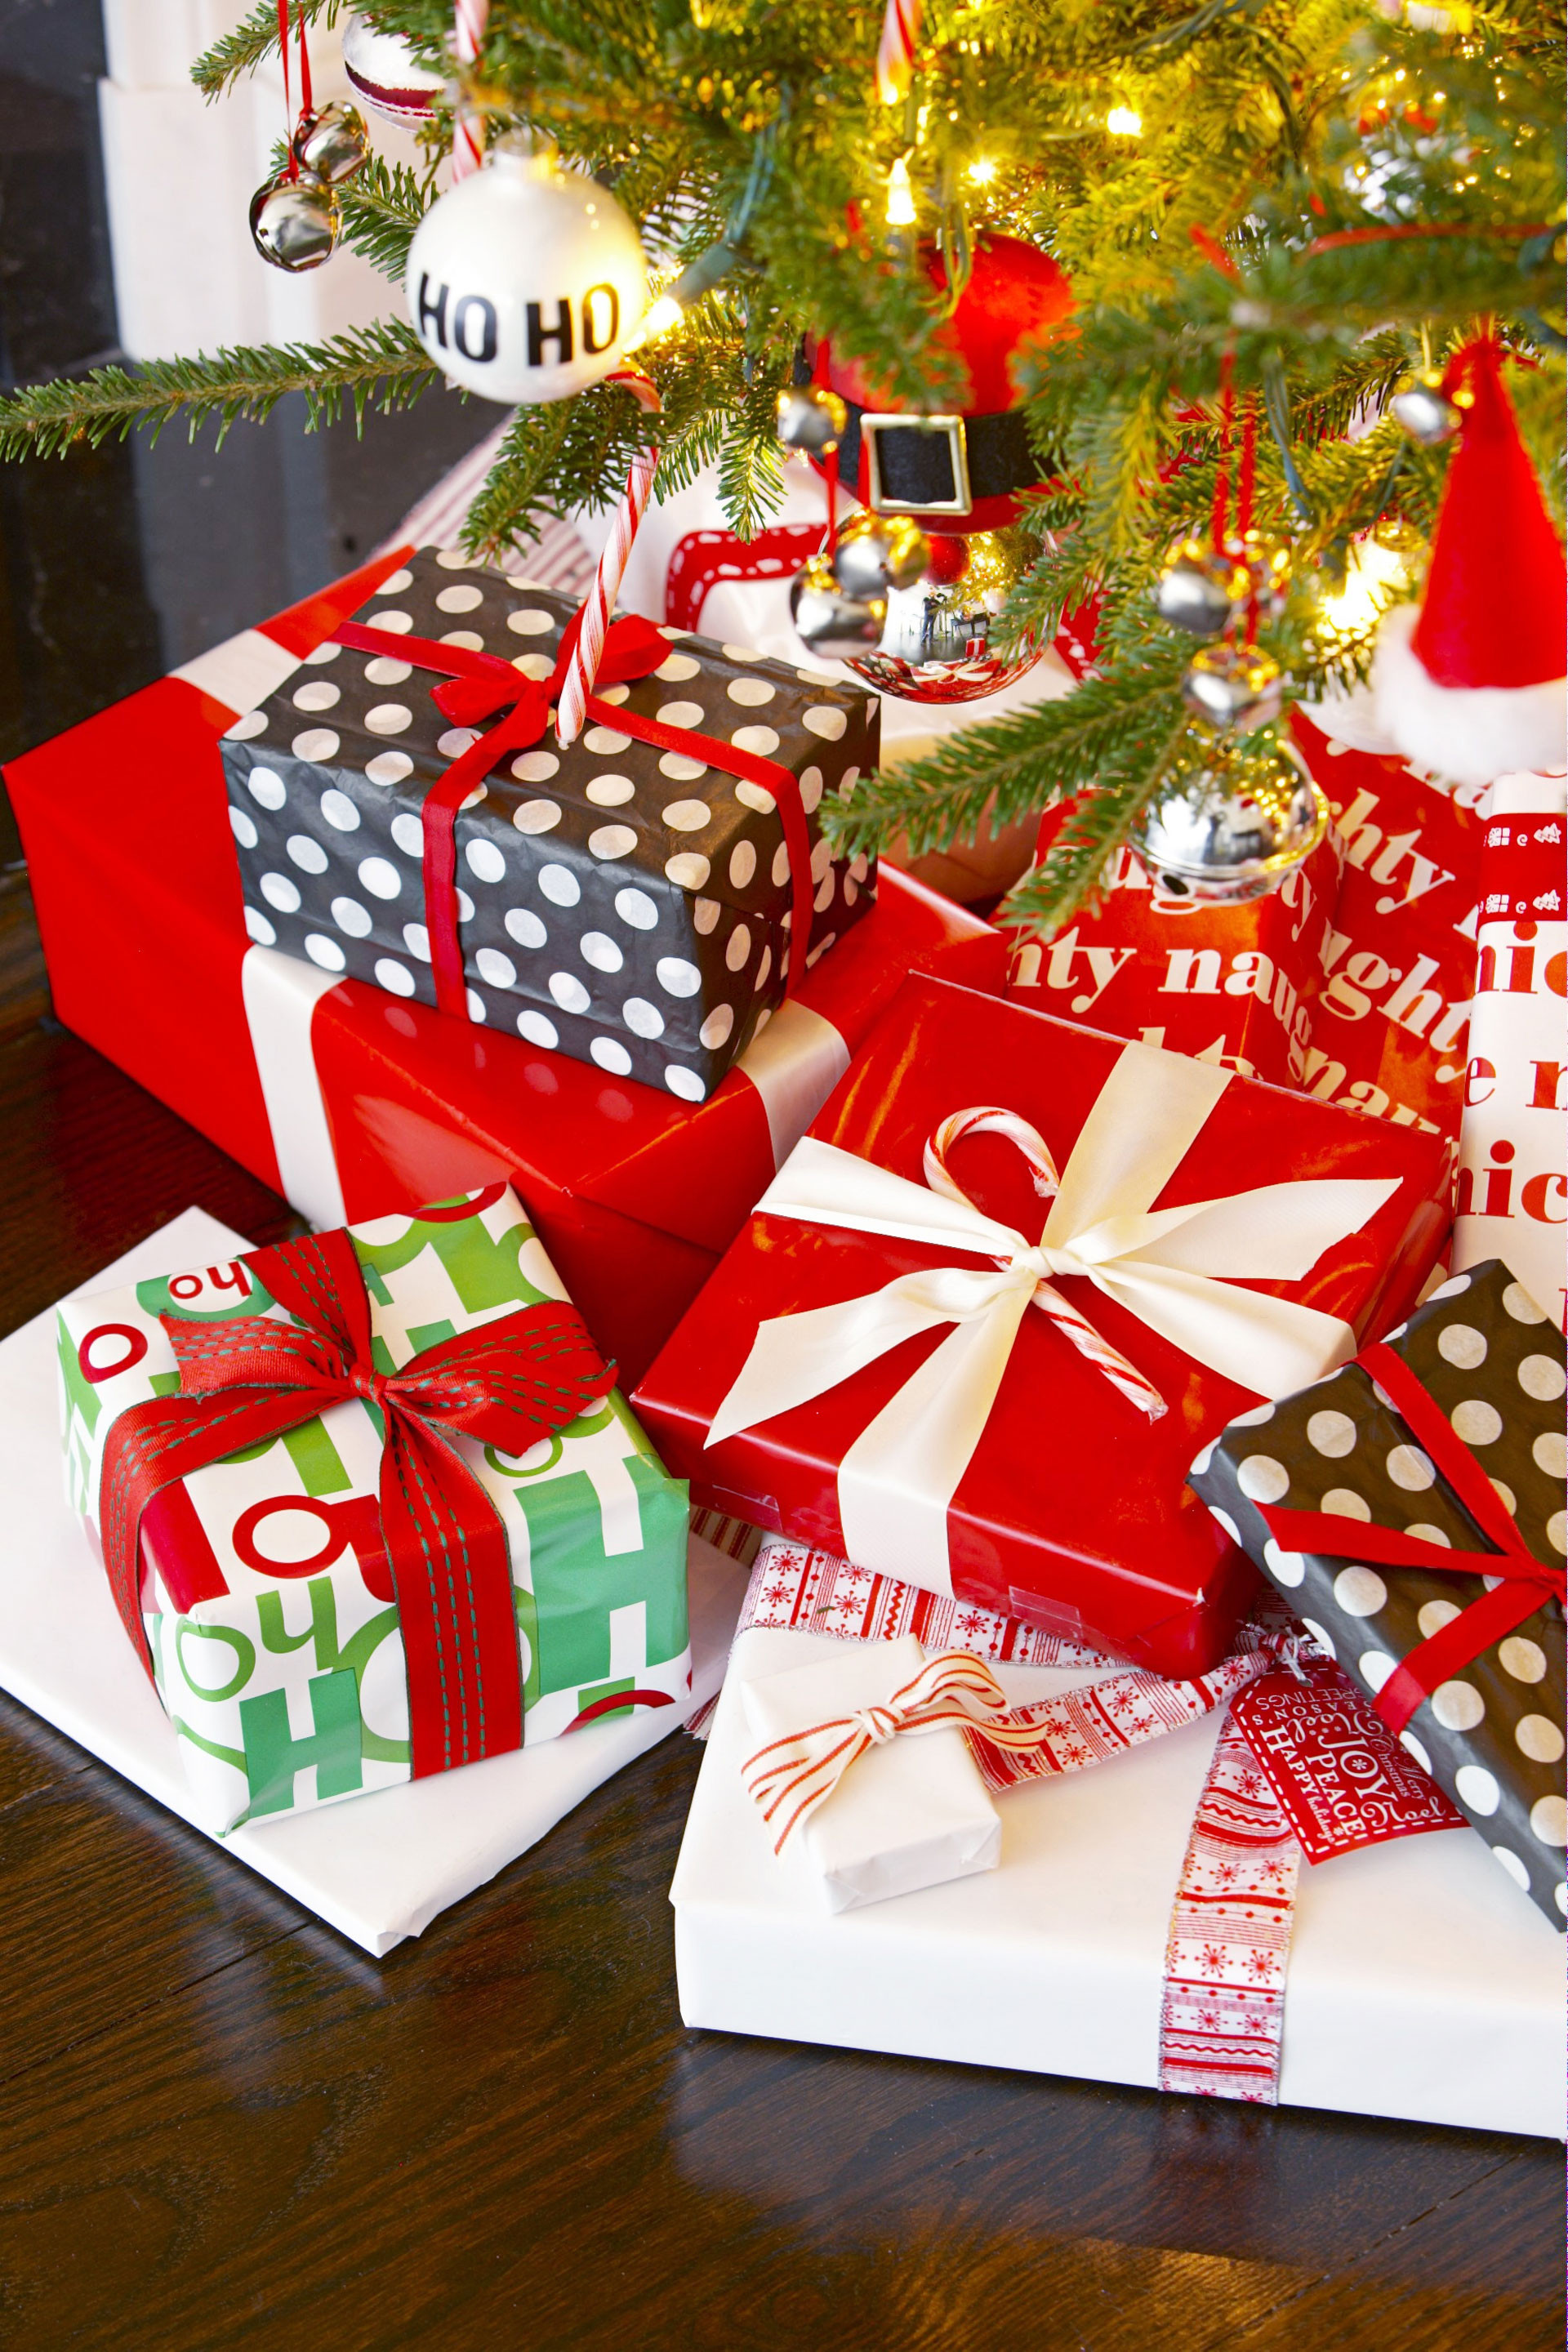 Christmas Gift Theme Ideas  33 Unique Christmas Gift Wrapping Ideas DIY Holiday Gift